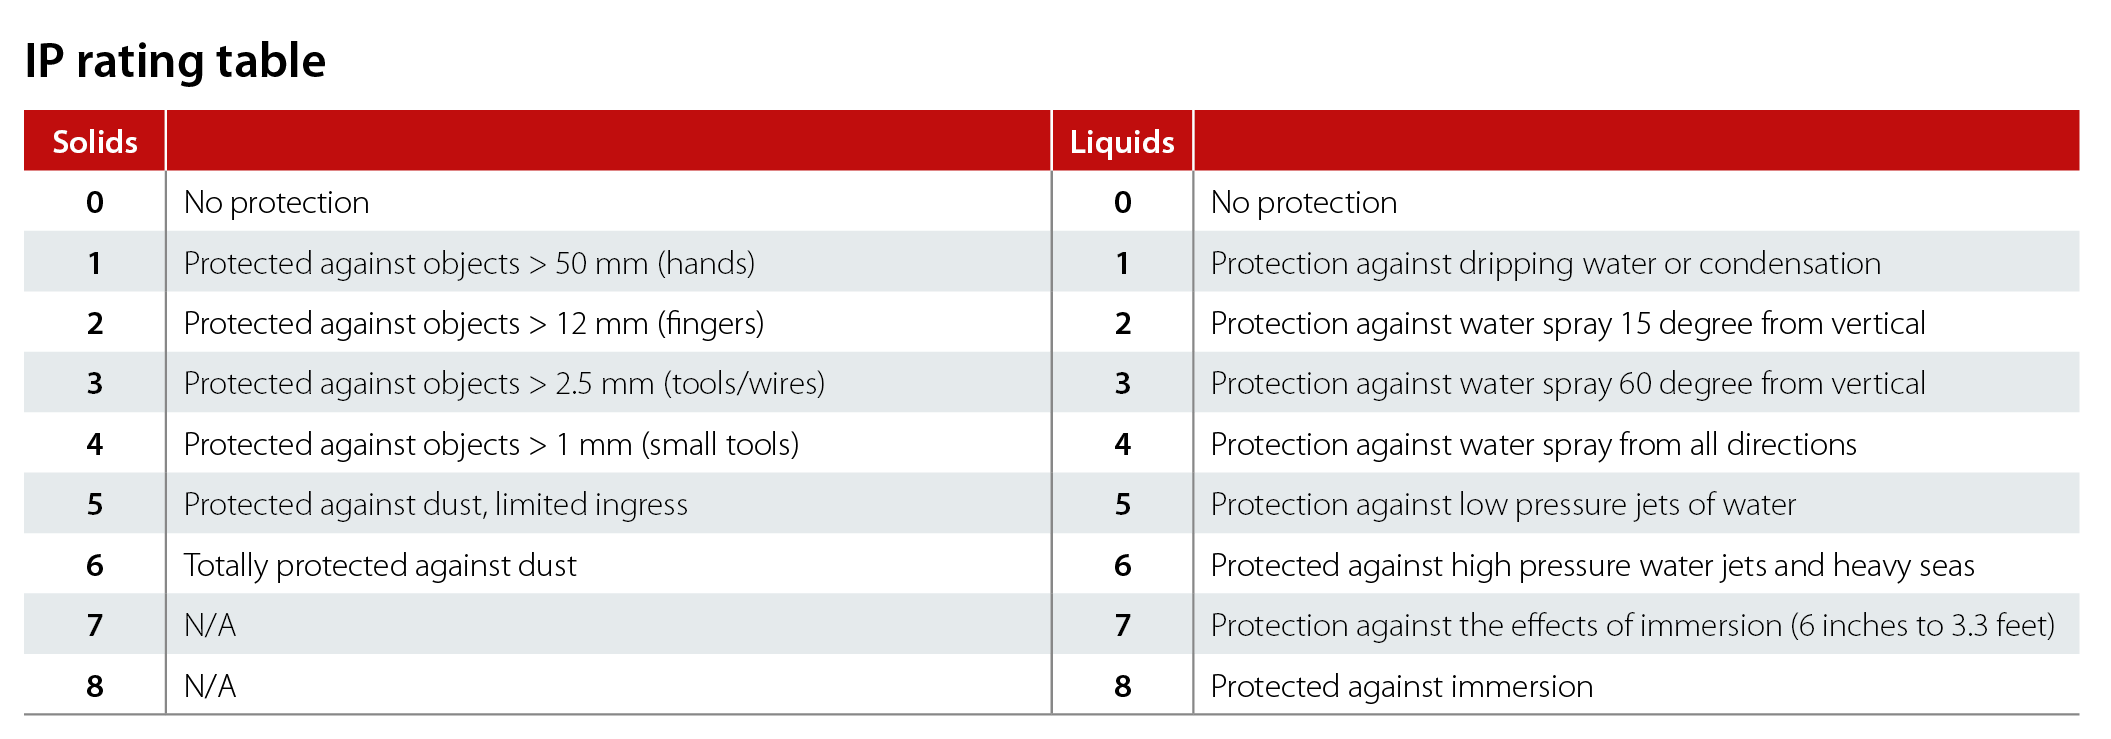 it s a harsh world part drives vs enclosure classes as can be seen in the ip rating table virtually all variations on solid and liquid protection are covered by the specifications